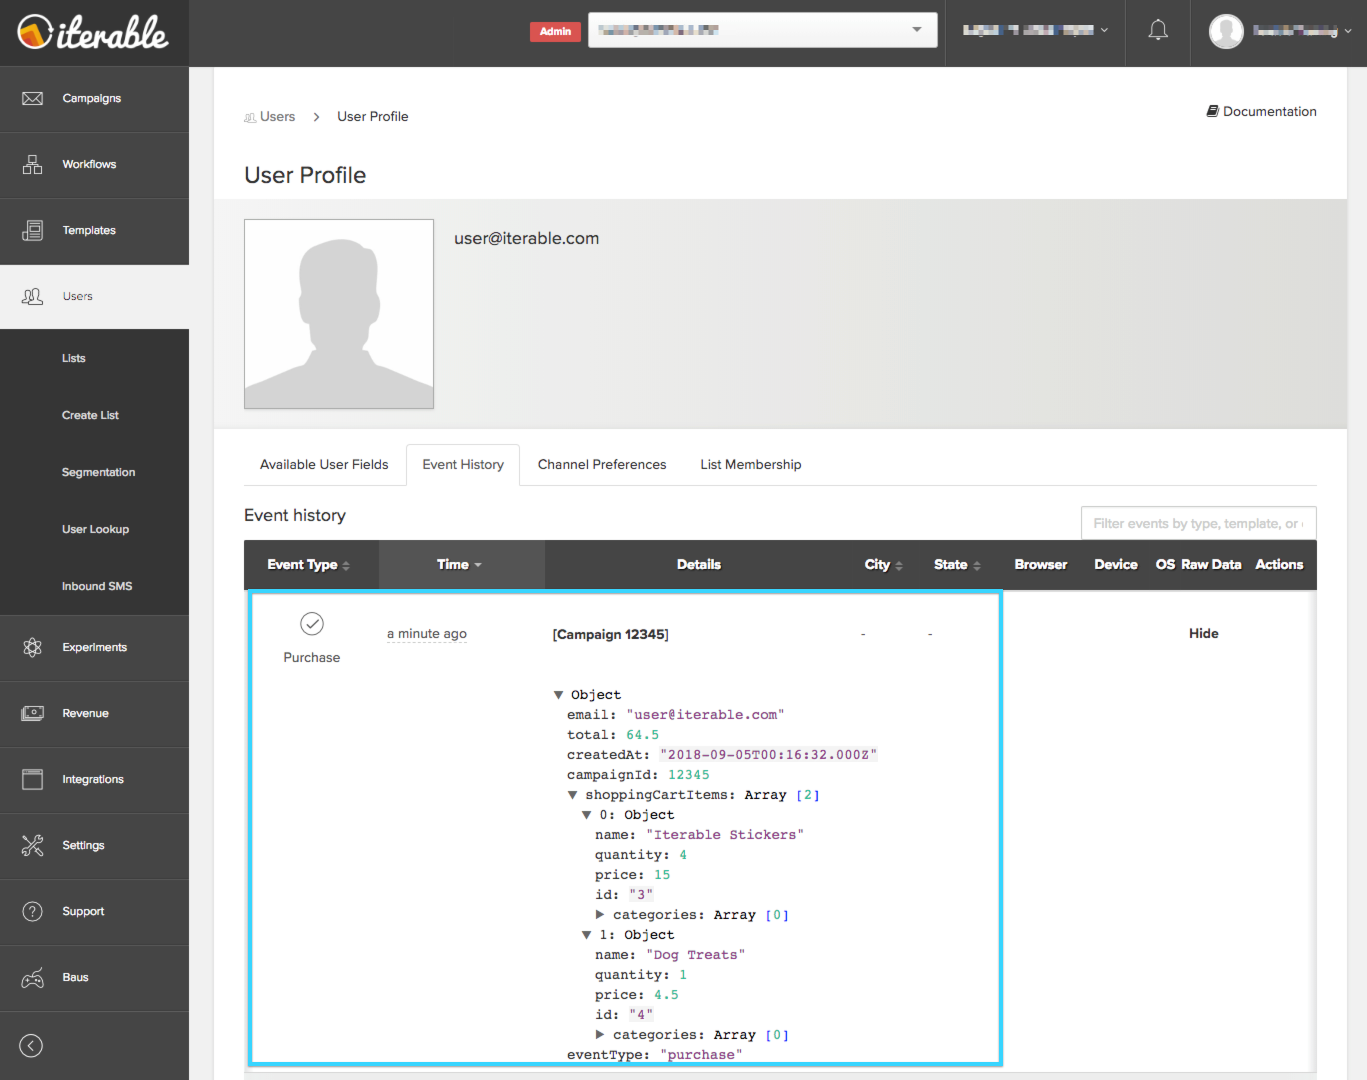 Events on a user's Iterable profile